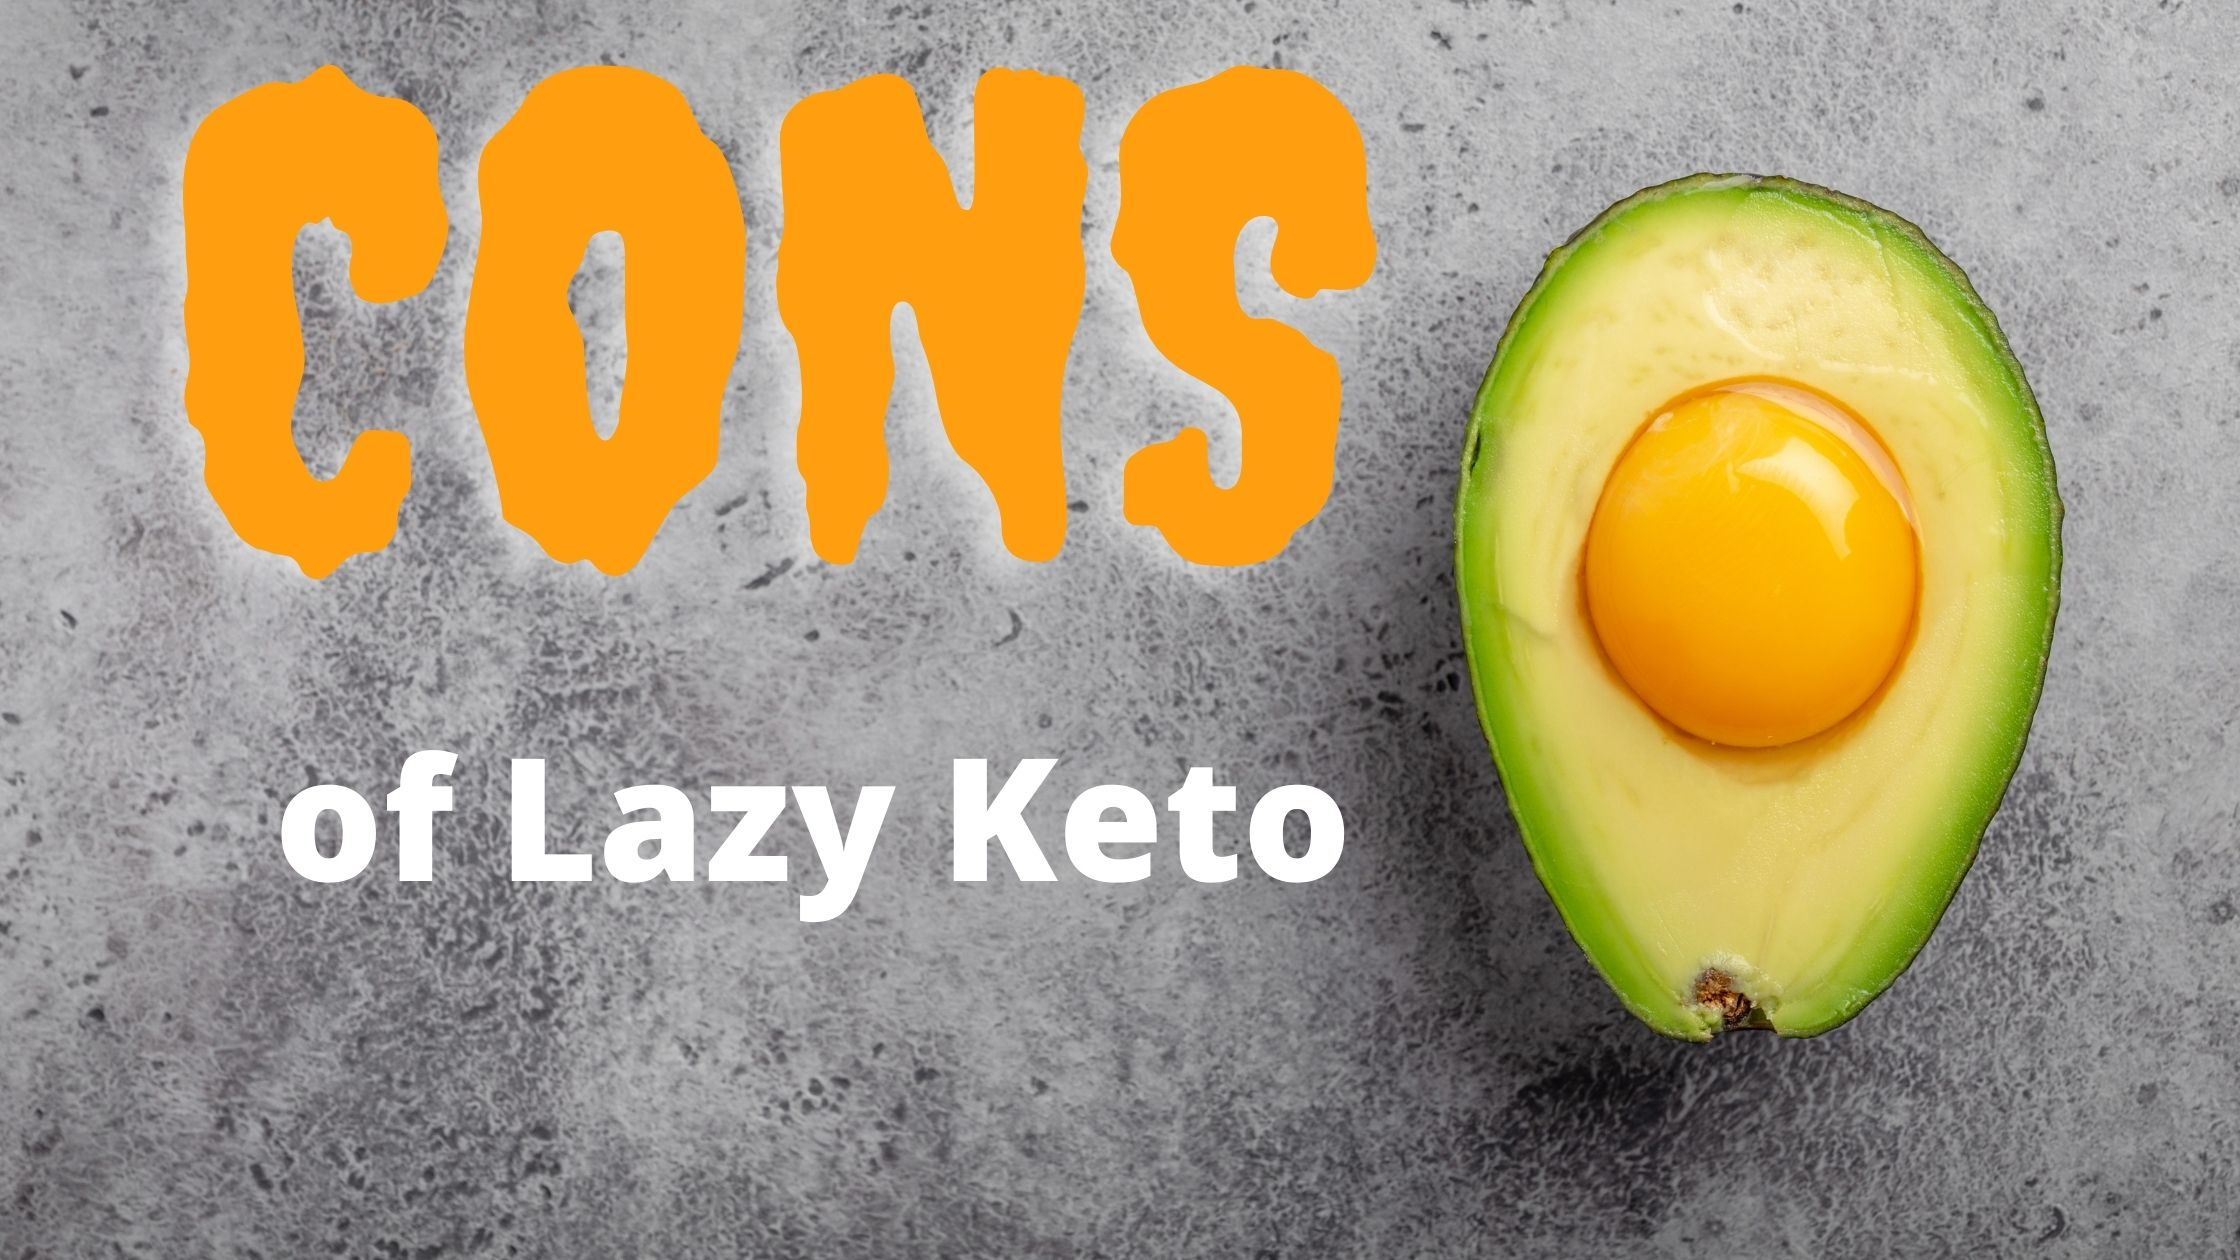 Cons of a lazy keto diet